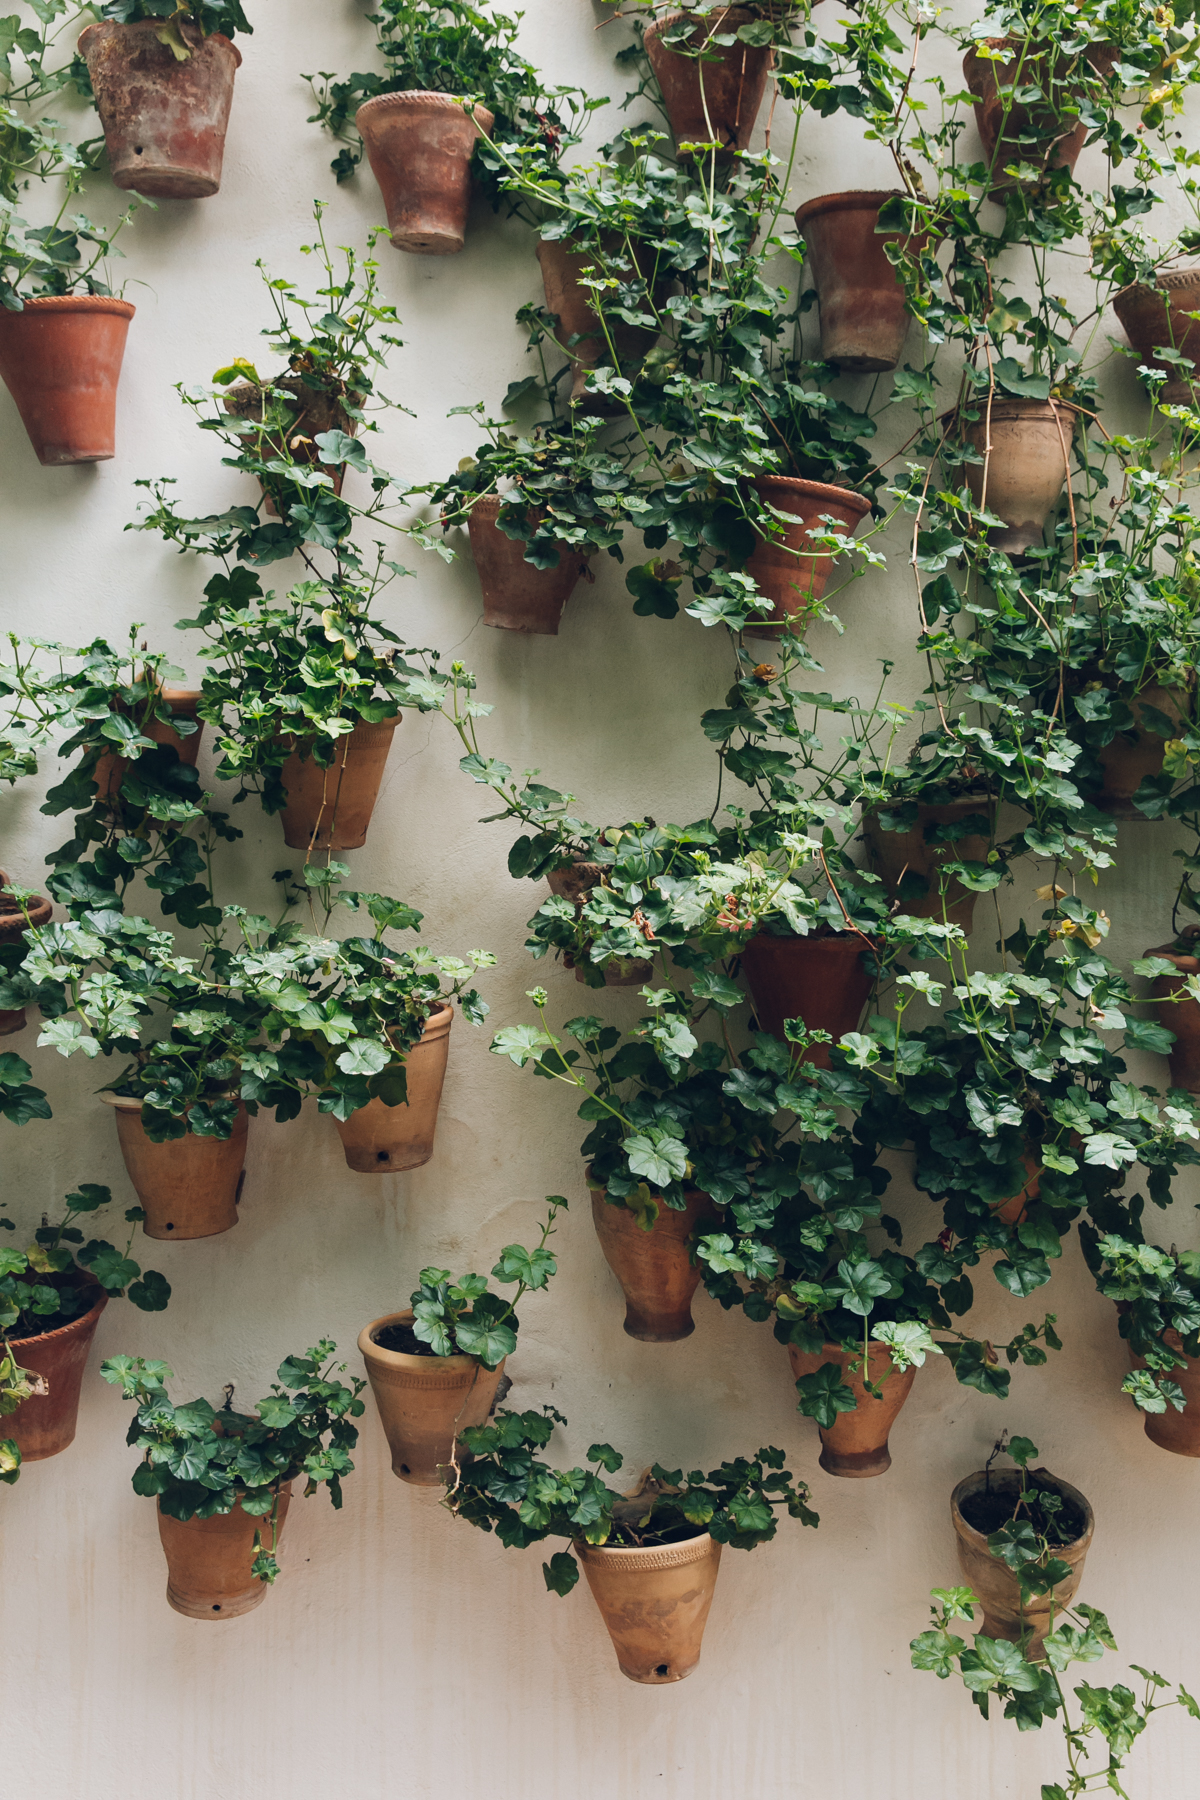 Plant display on a patio wall in Andalusia.